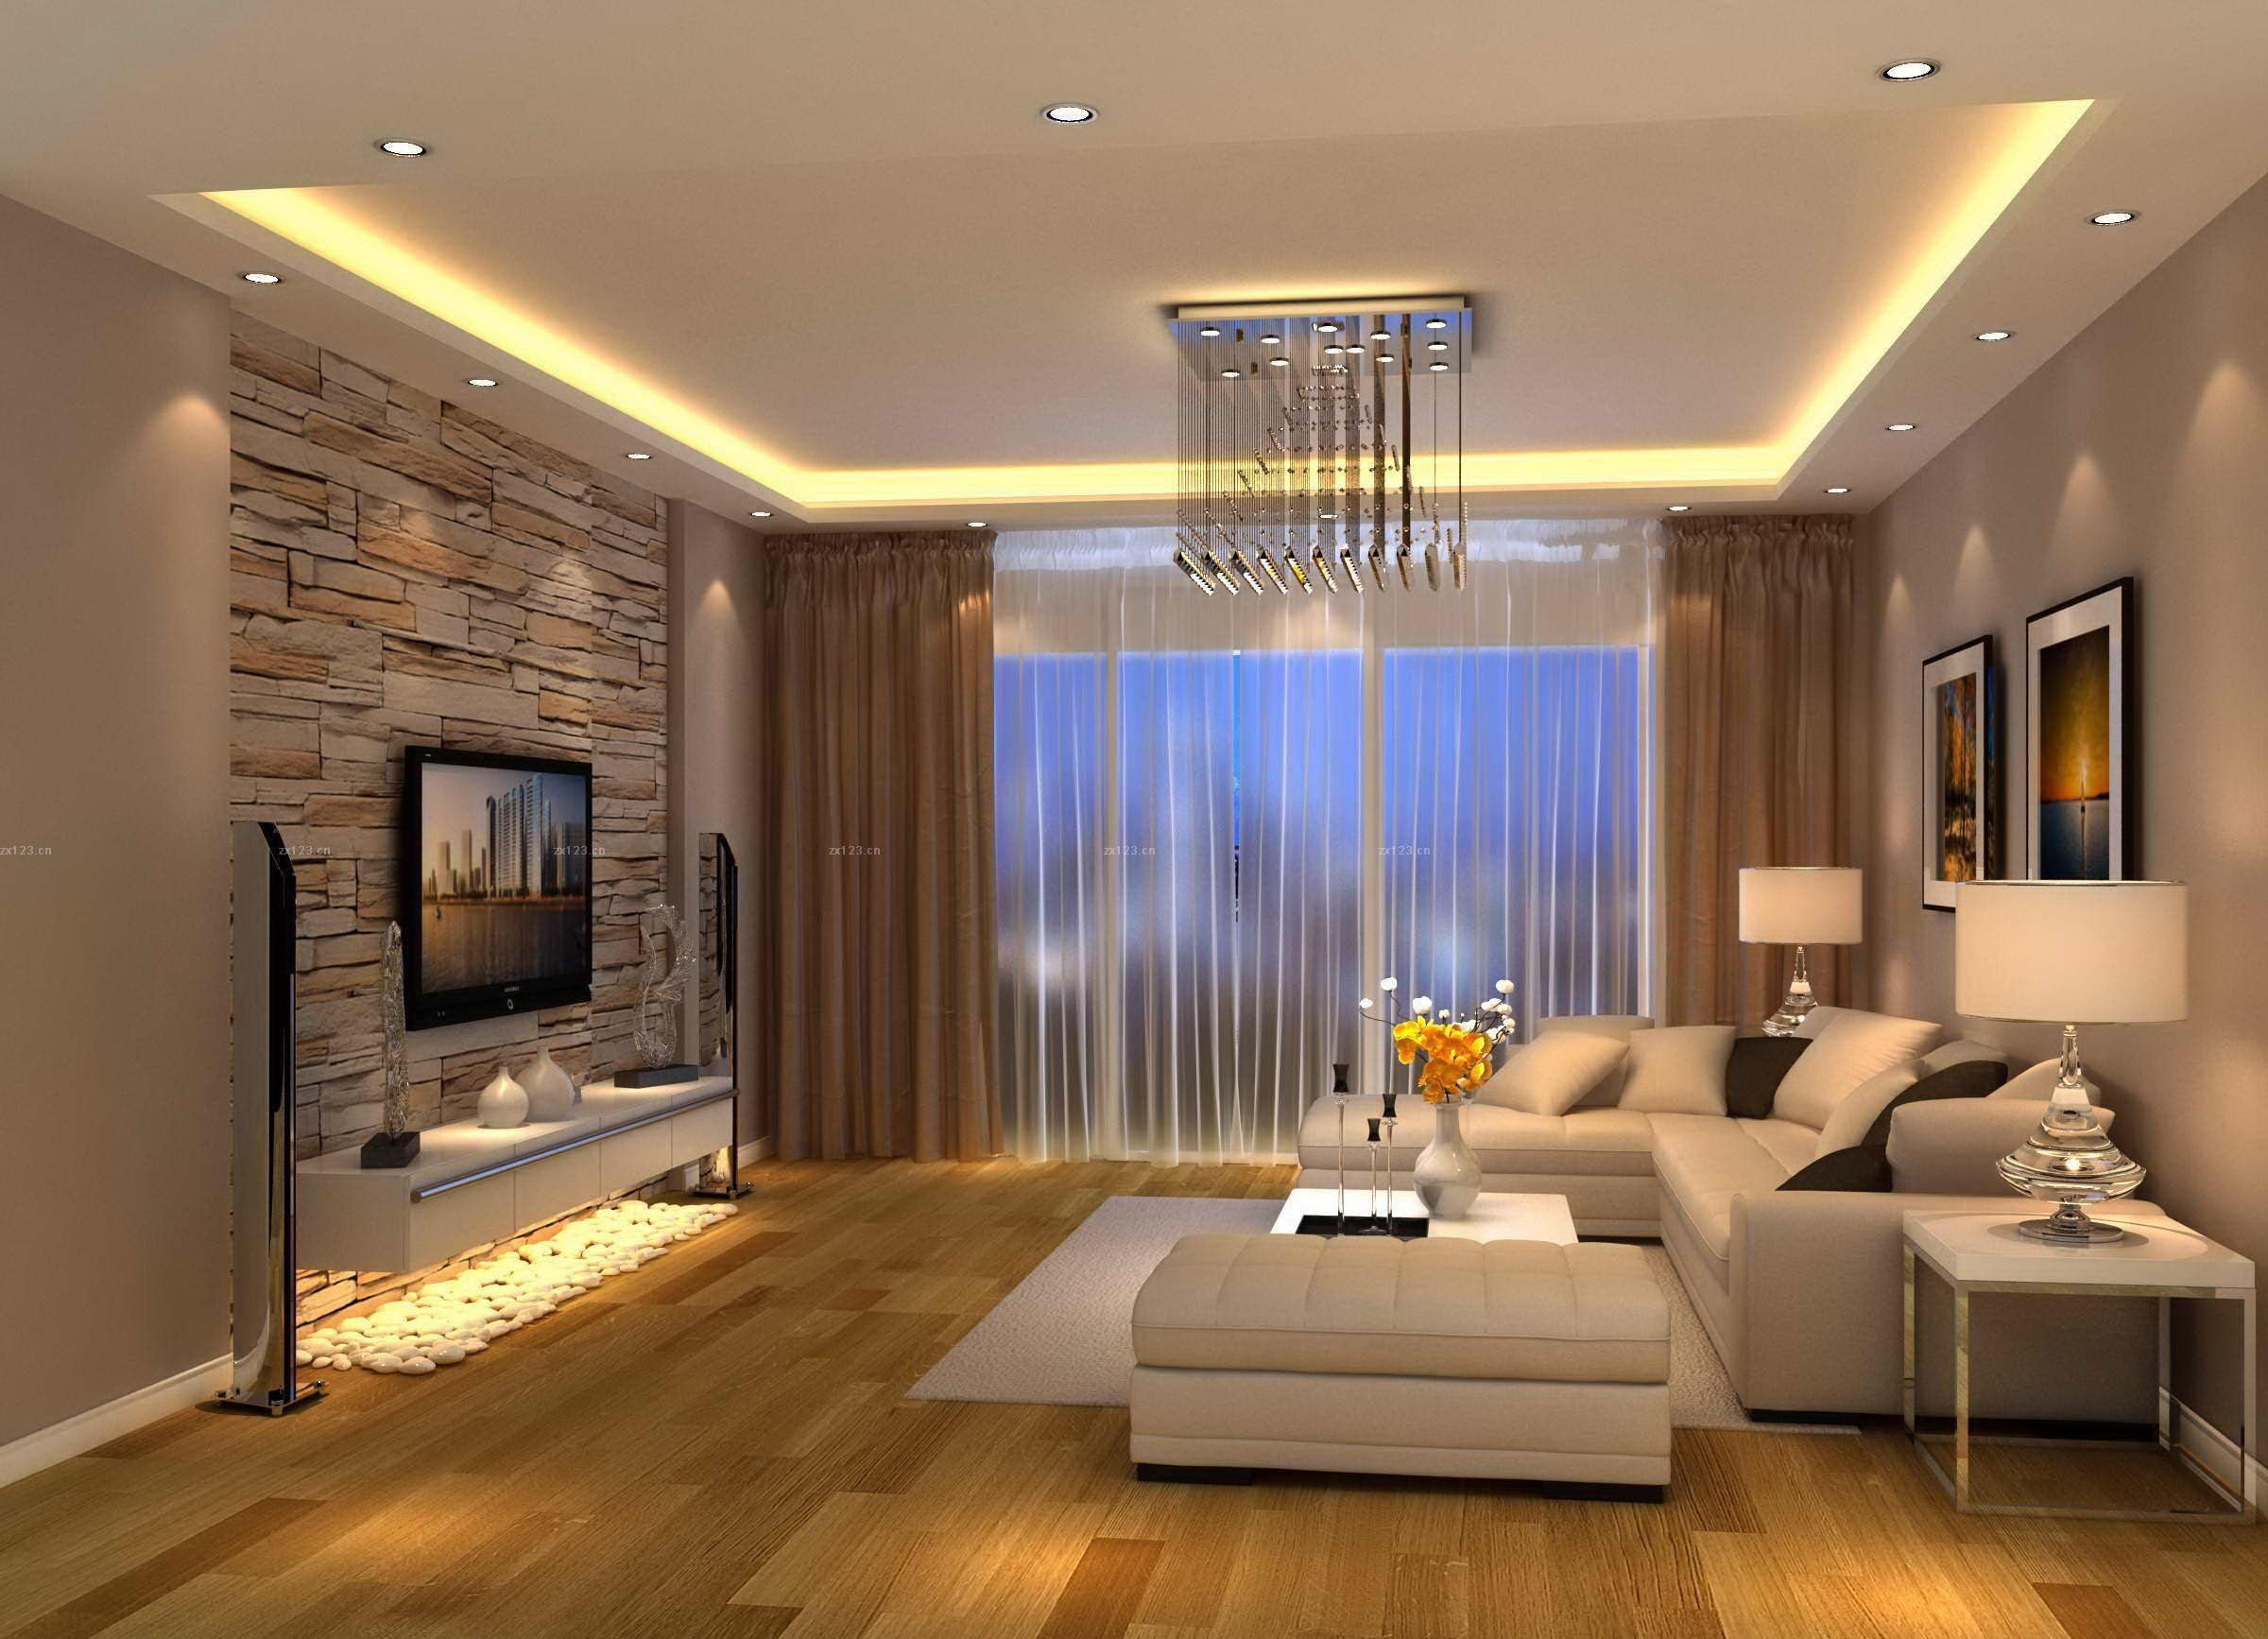 Living room interior design ideas uk